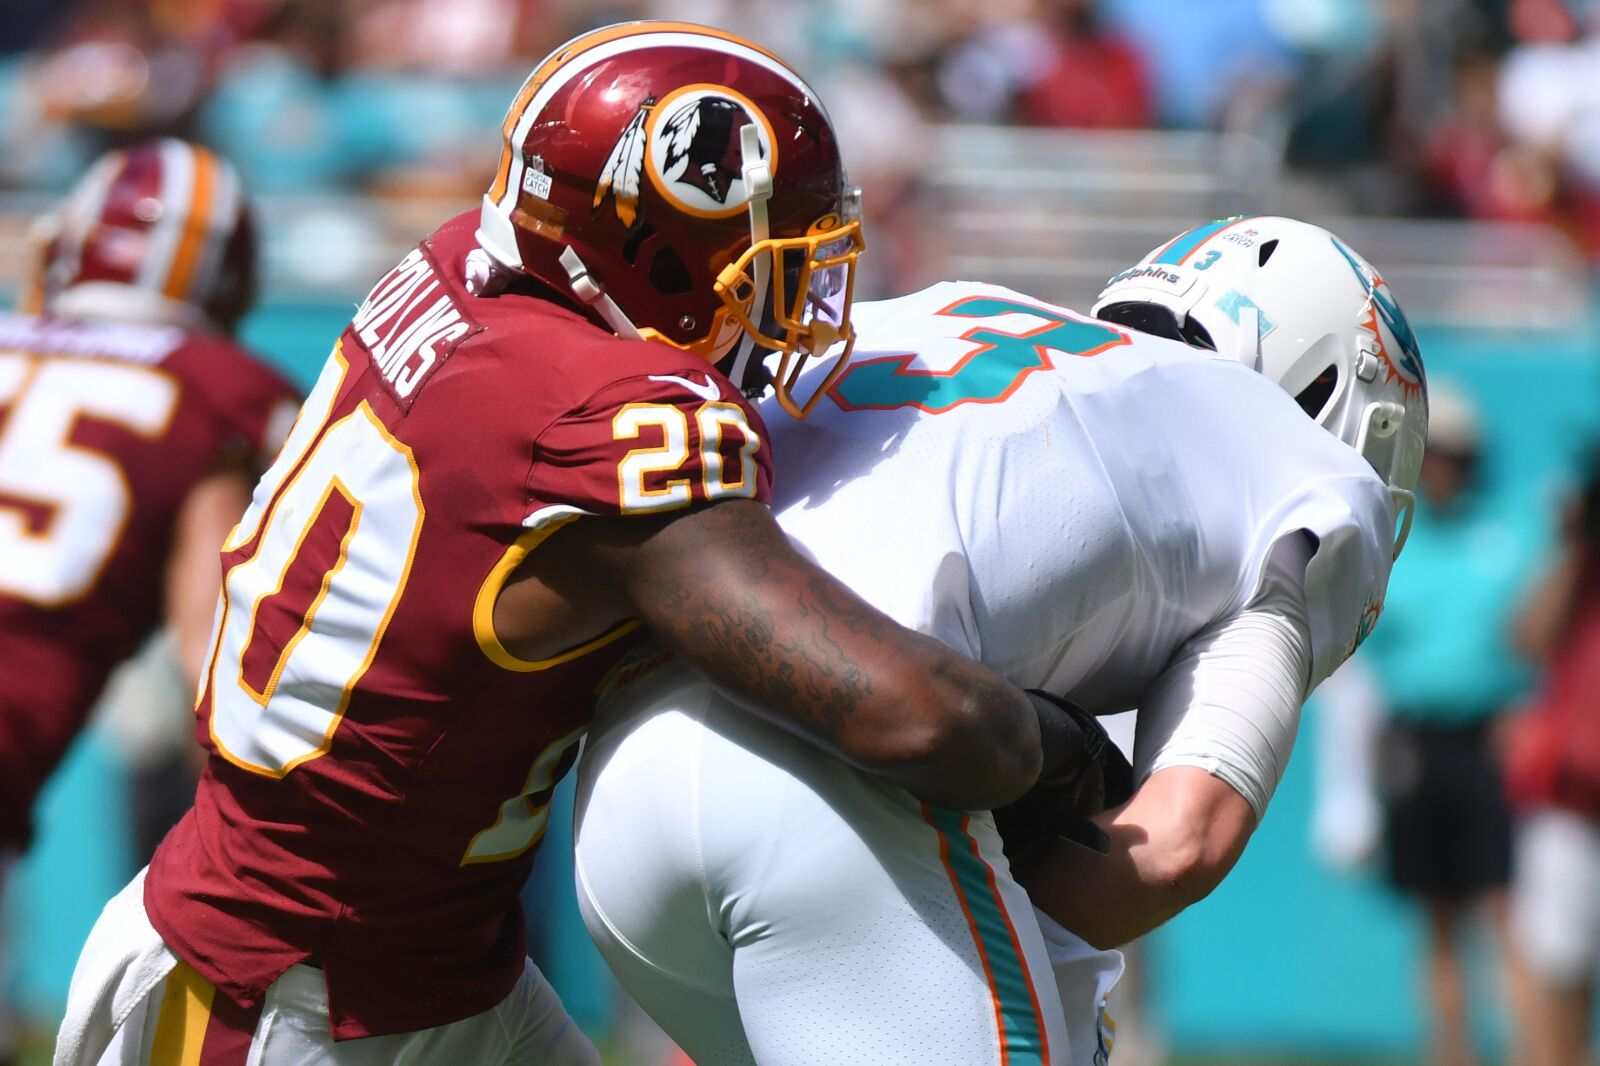 Three takeaways from Redskins win over Dolphins in NFL Week 6